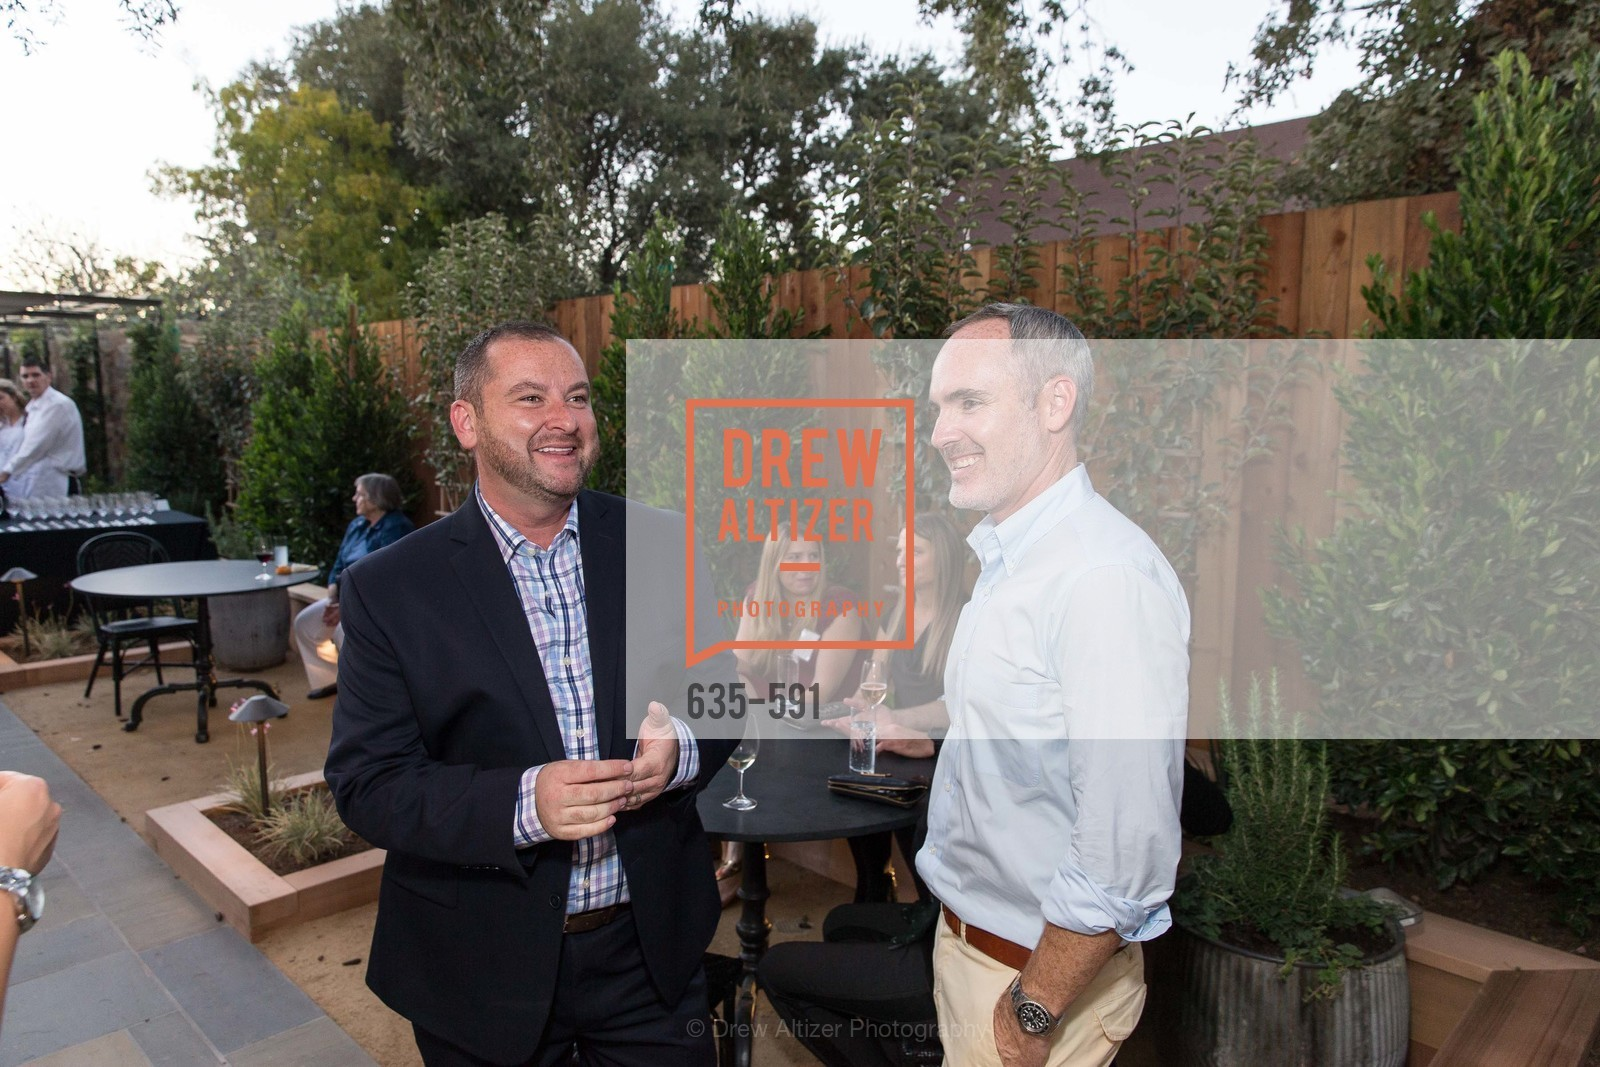 Jonathan Waugh, Neil Lick, CHUCK WILLIAMS Birthday Celebration, US, October 3rd, 2014,Drew Altizer, Drew Altizer Photography, full-service event agency, private events, San Francisco photographer, photographer California